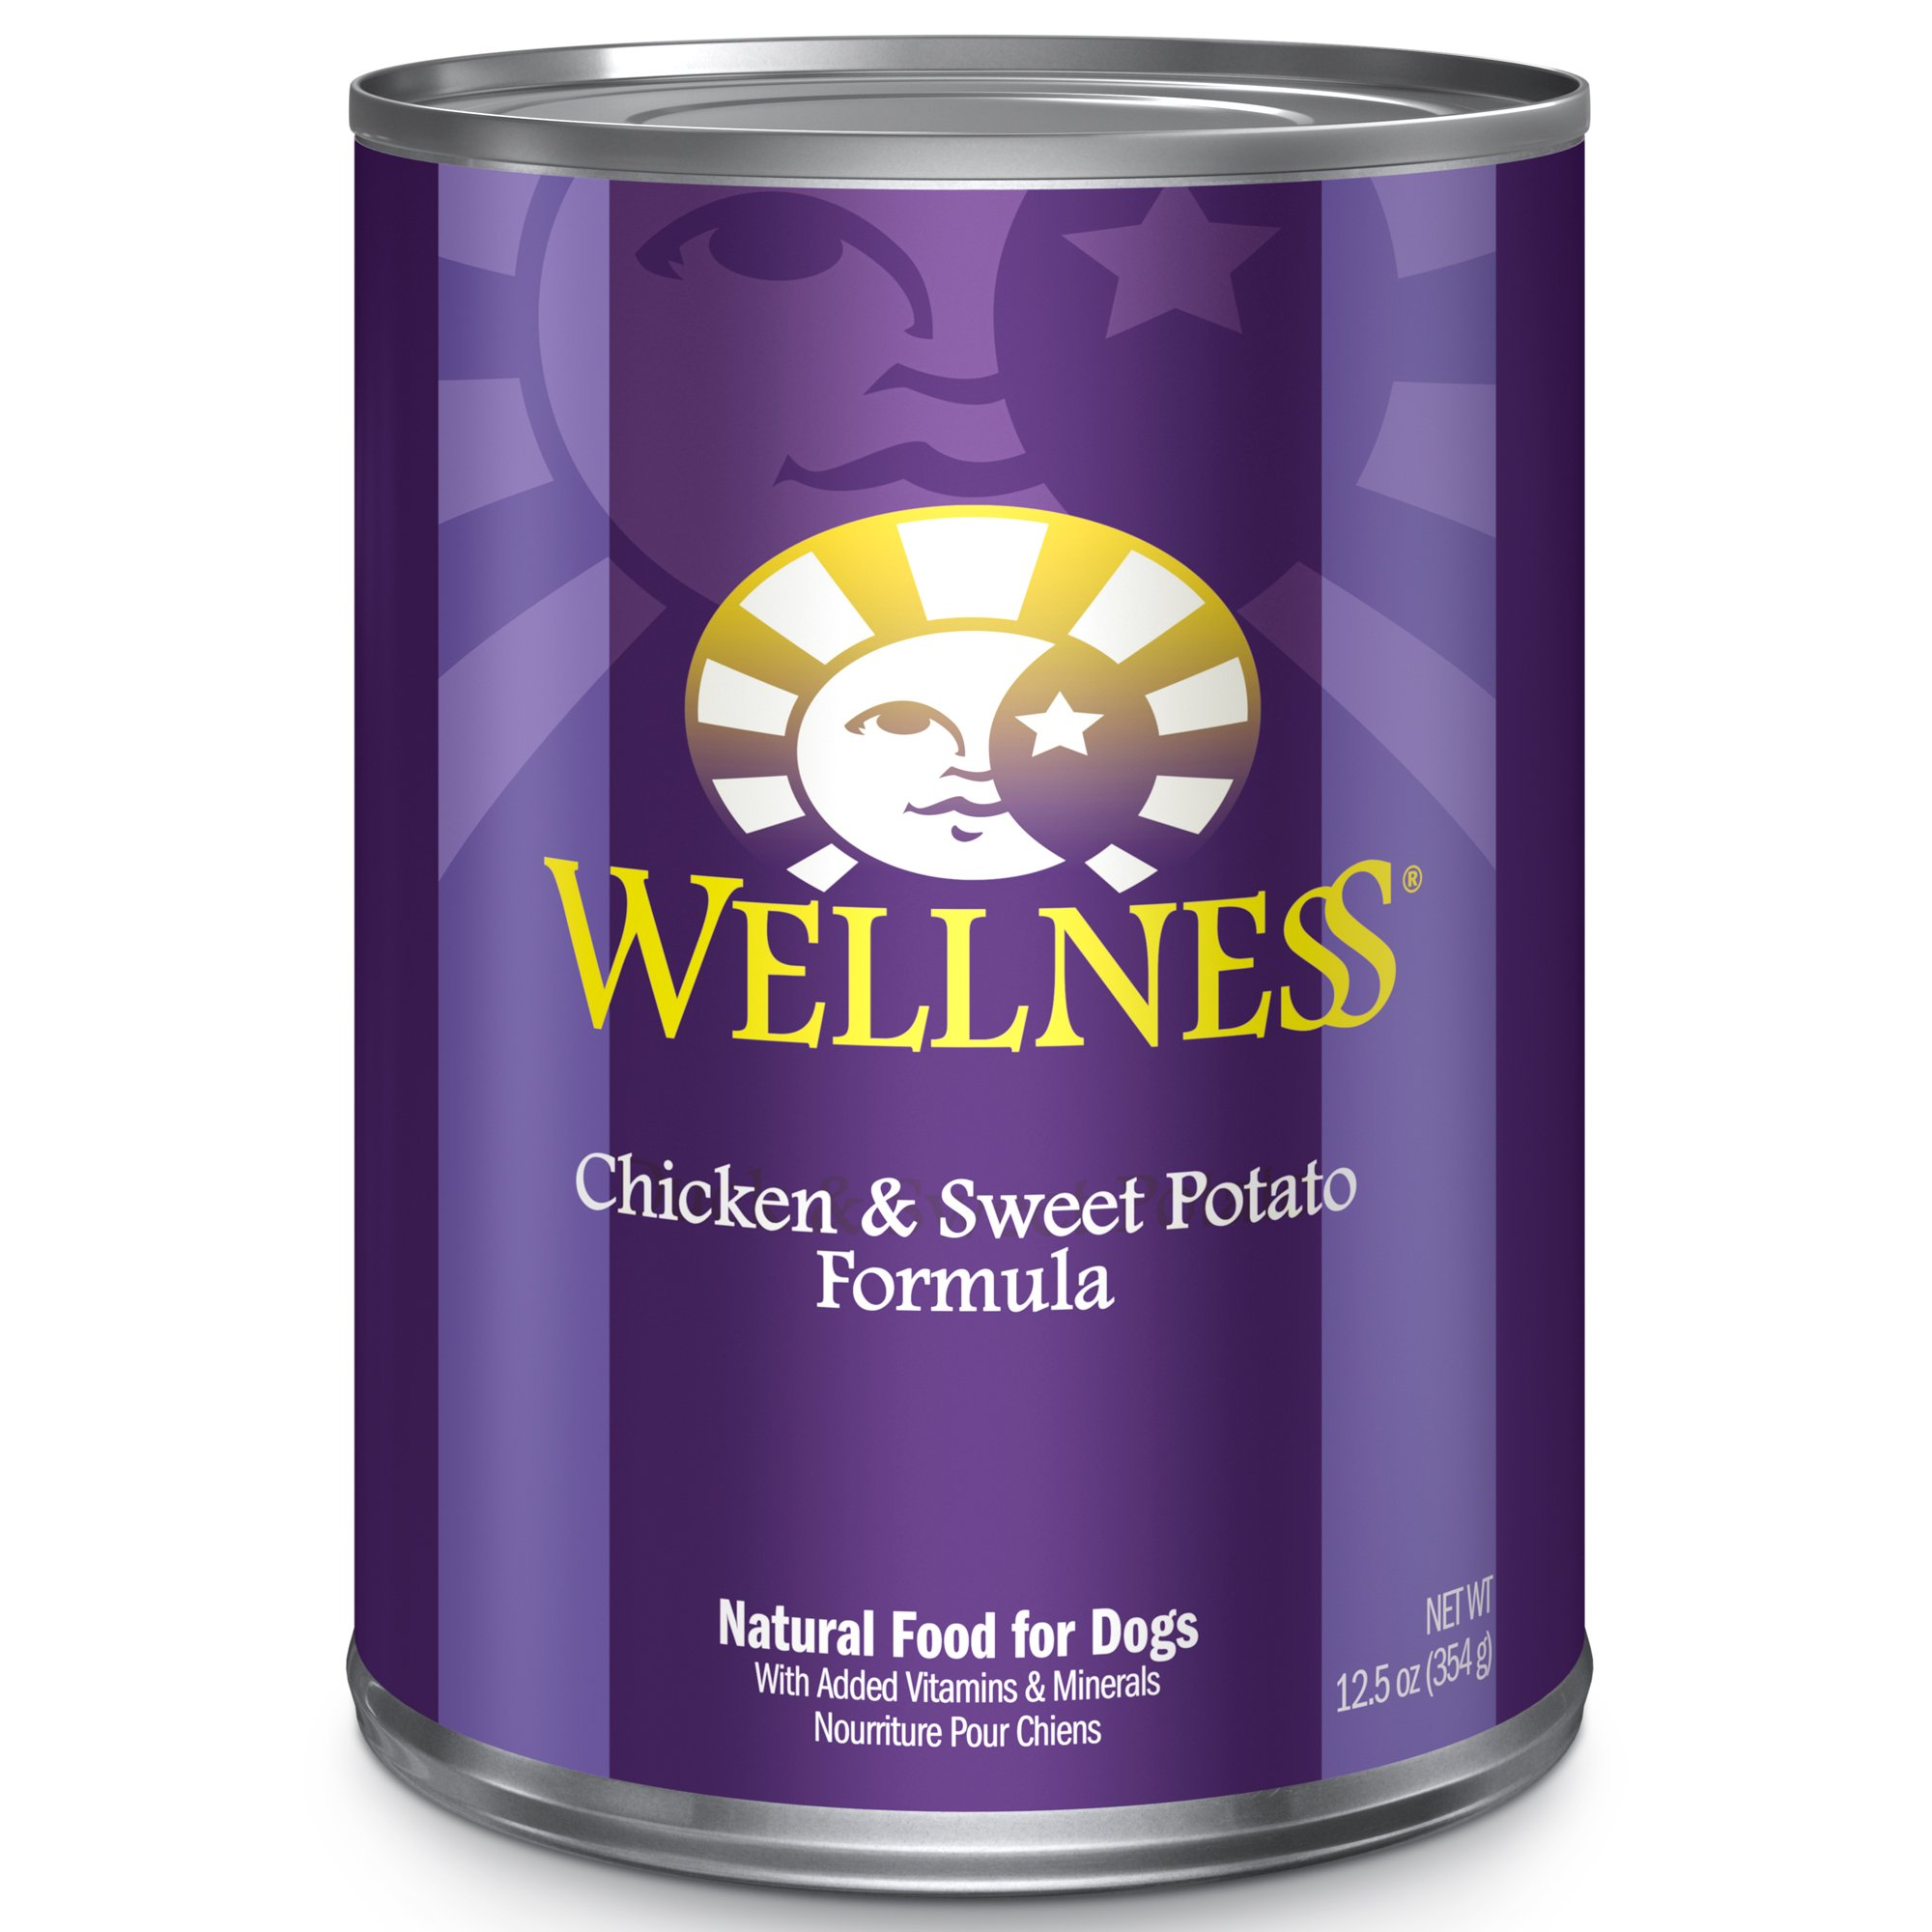 Petco Canned Dog Food